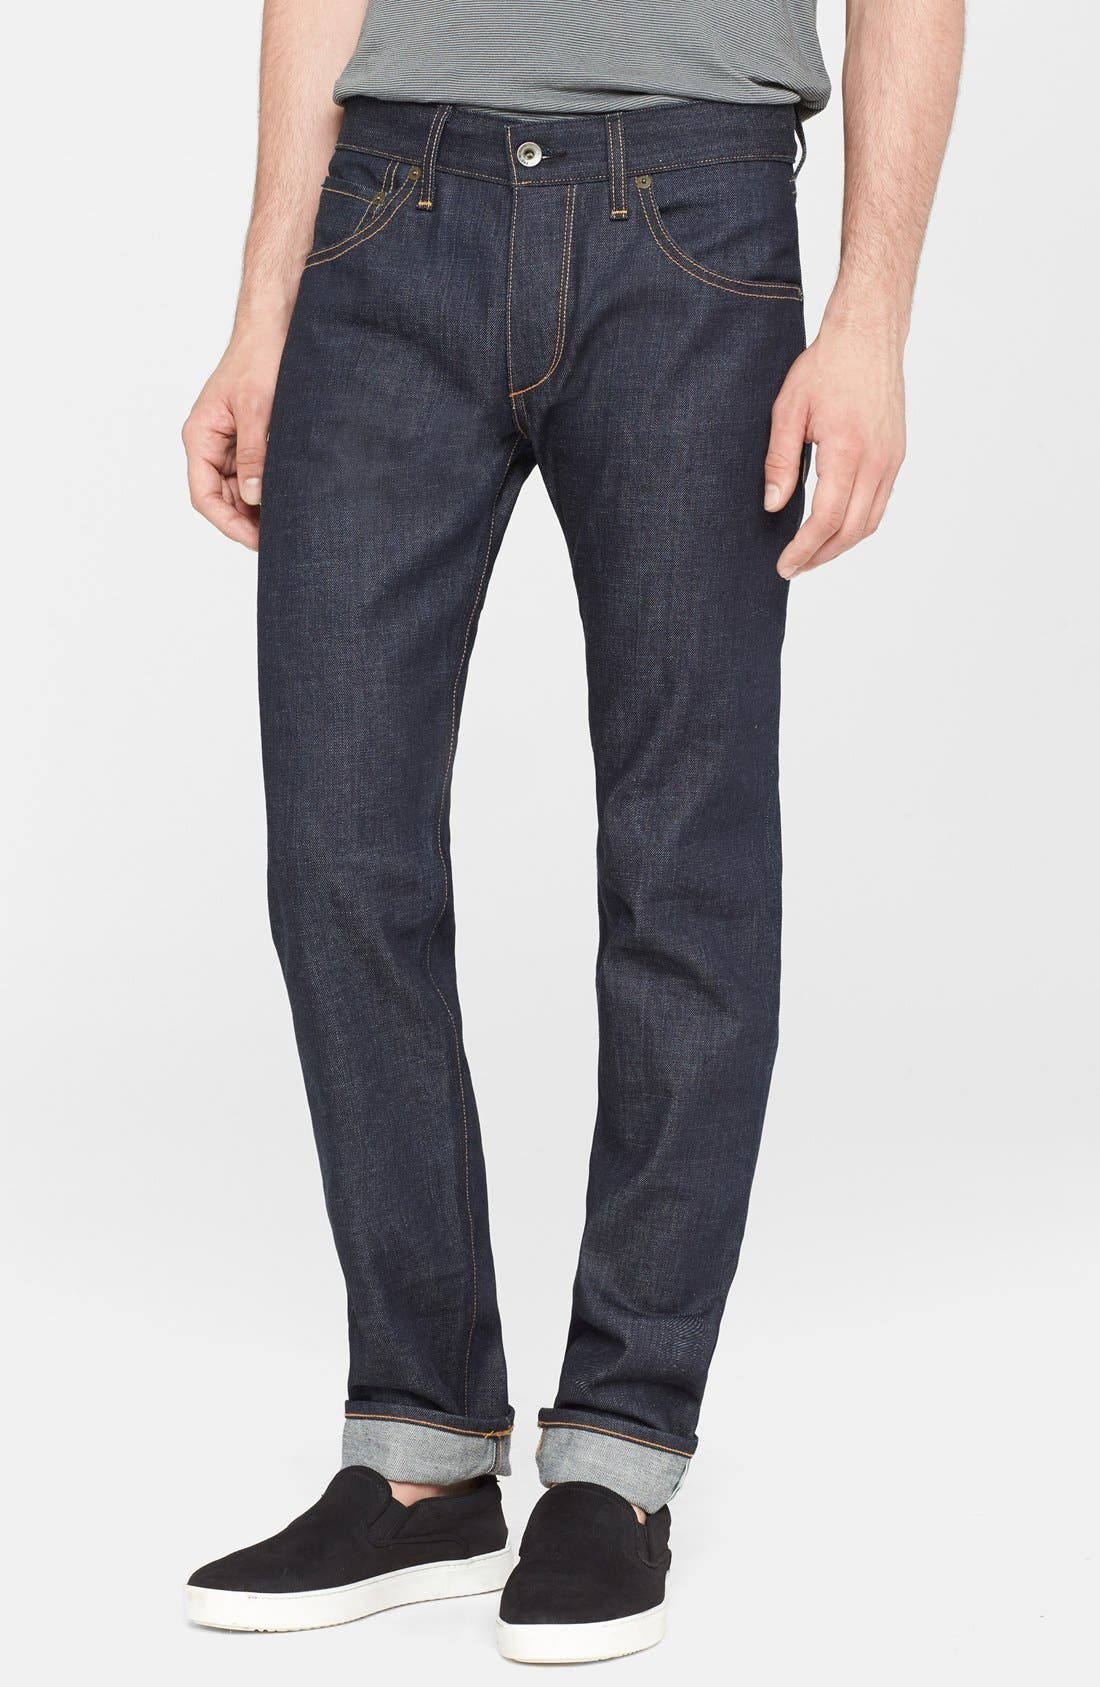 Main Image - rag & bone Standard Issue Fit 2 Slim Fit Raw Selvedge Jeans (Indigo)